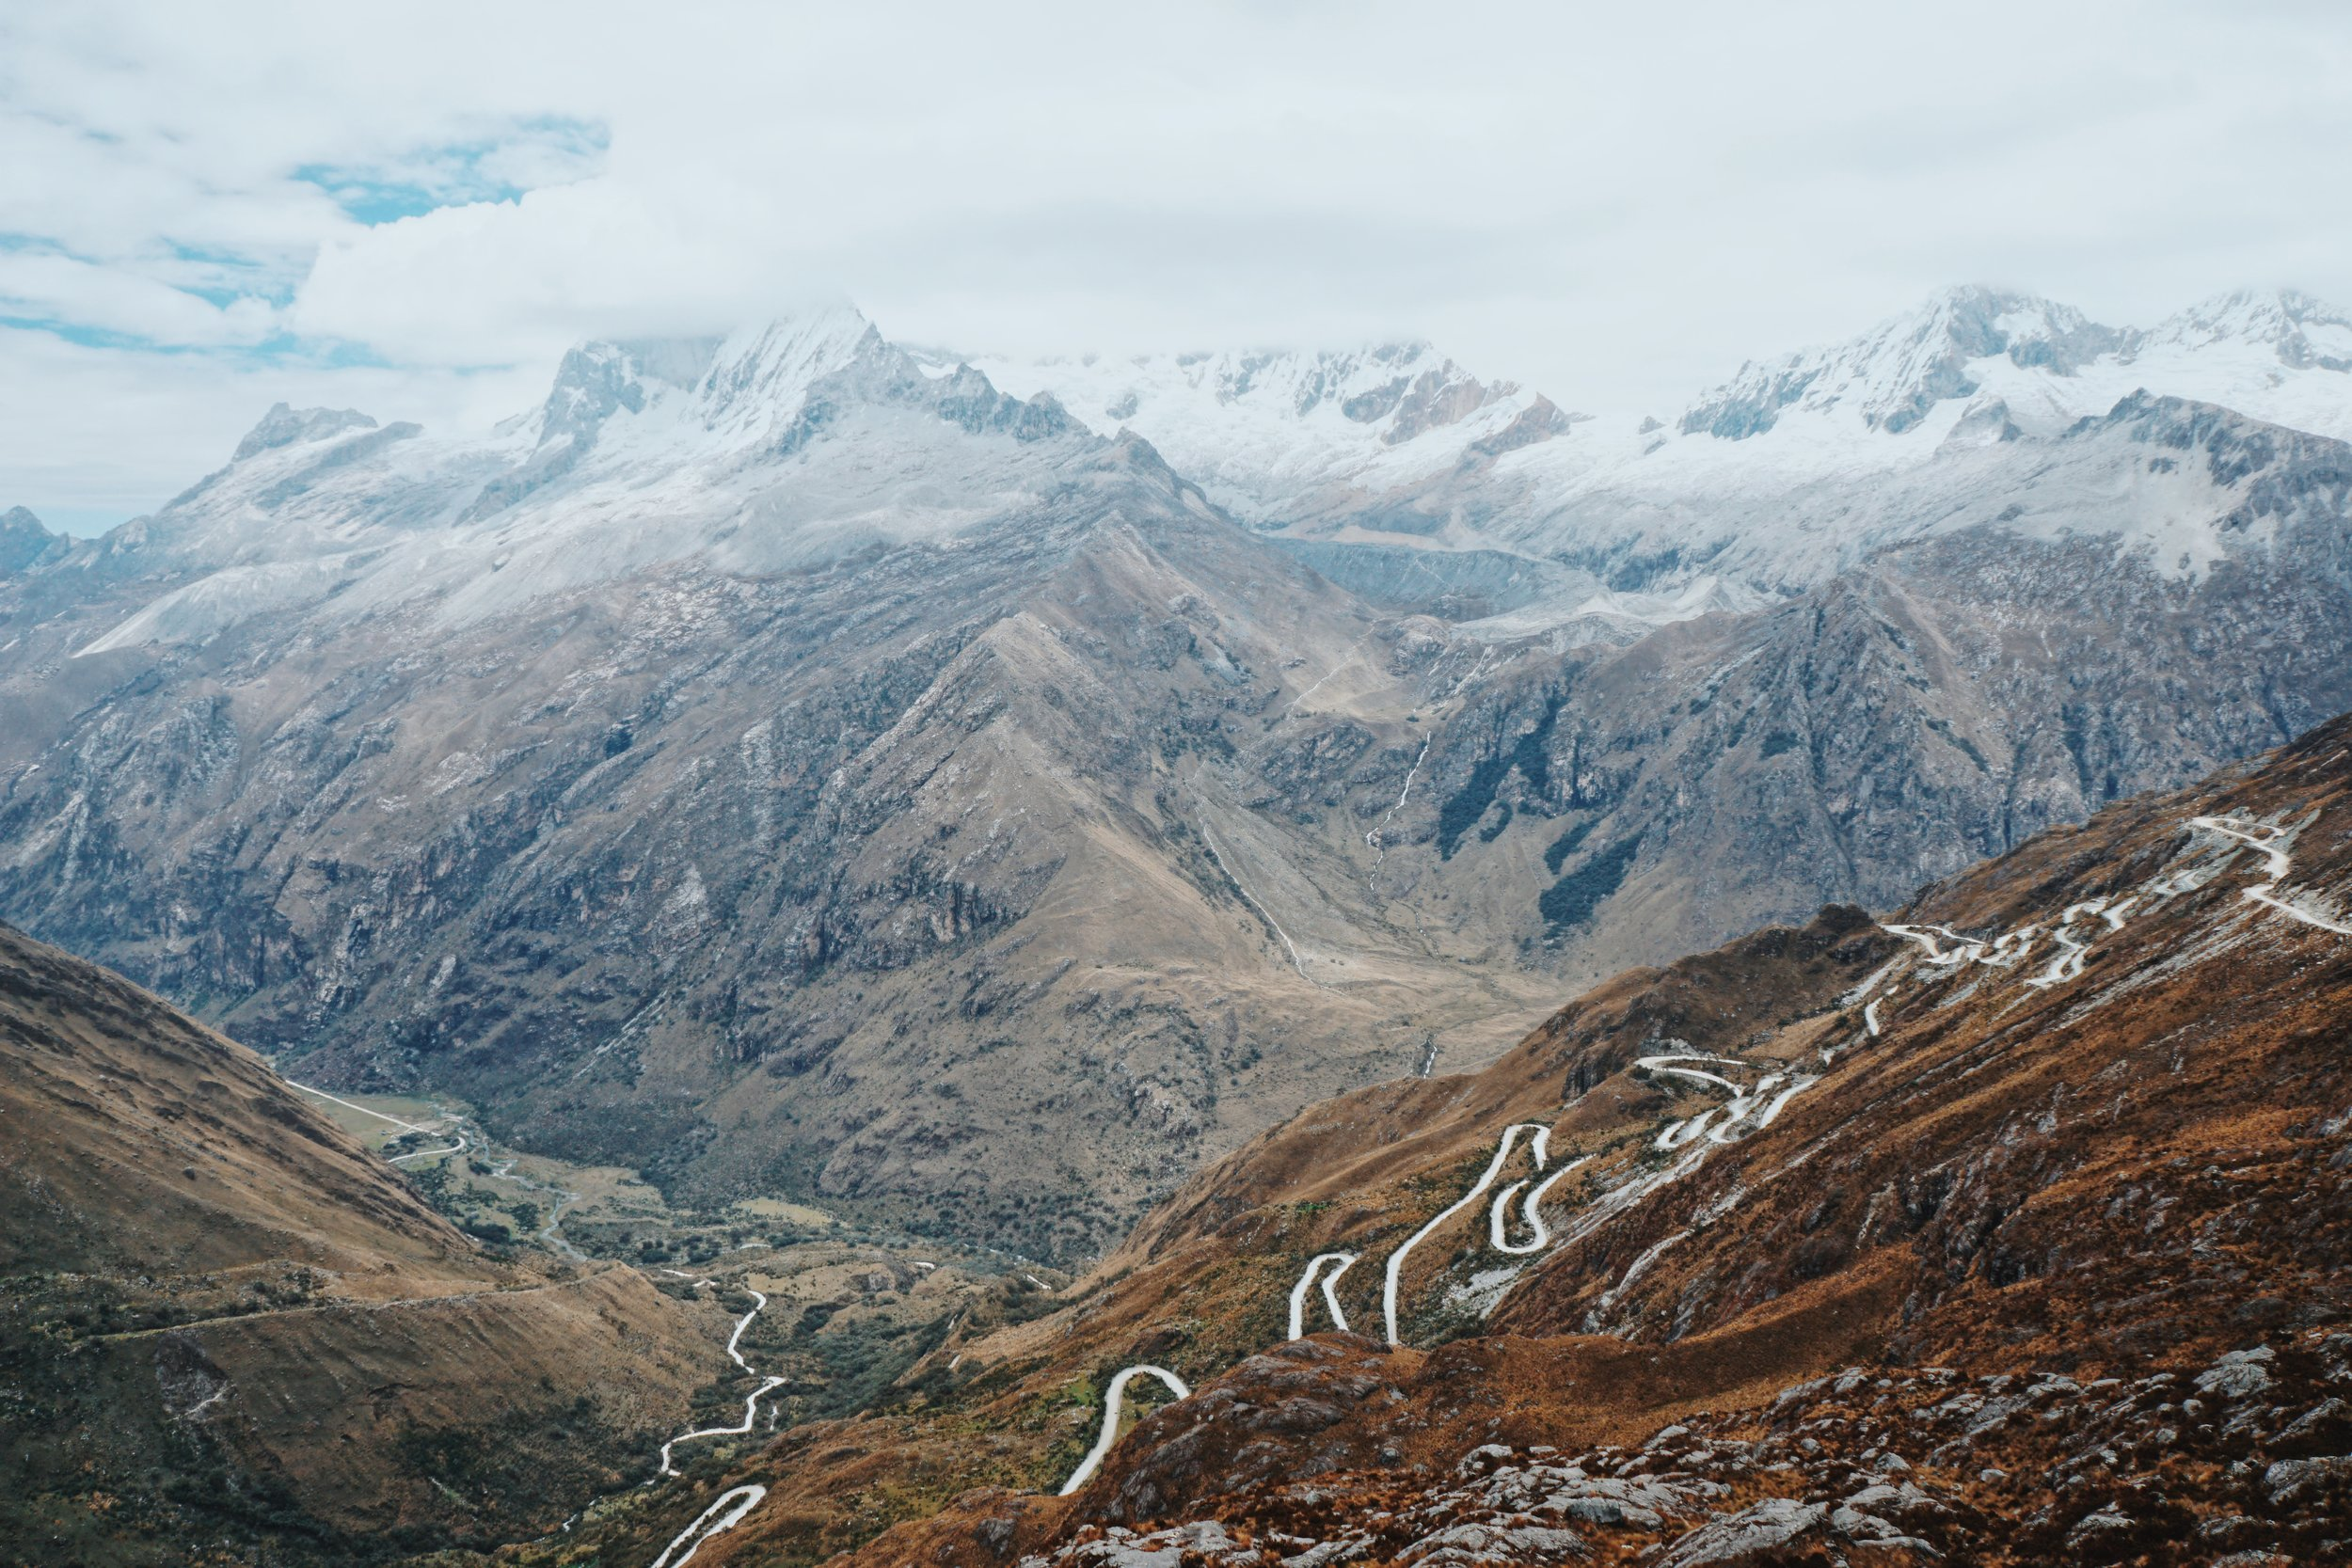 The drive back to Huaraz after 3 nights on the Santa Cruz trek.